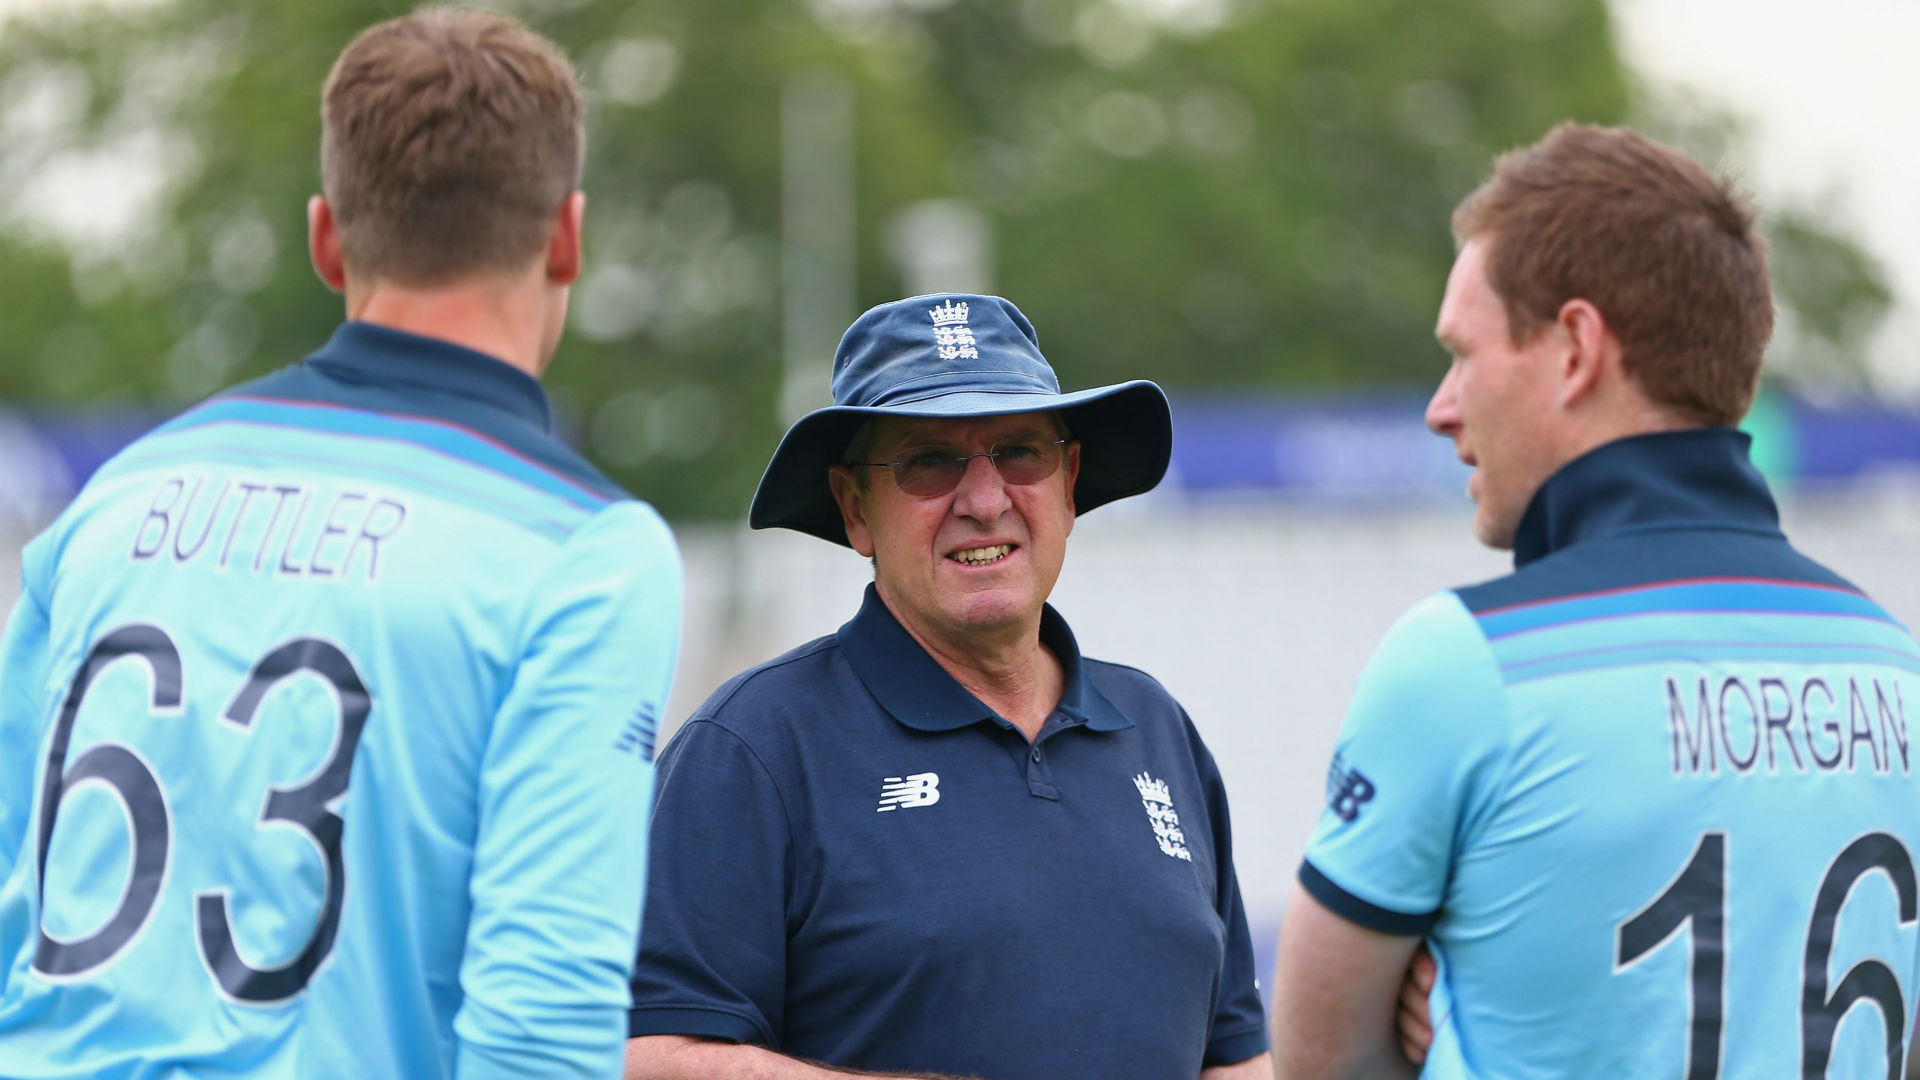 England v Australia: Morgan's men look for response after Sri Lanka setback